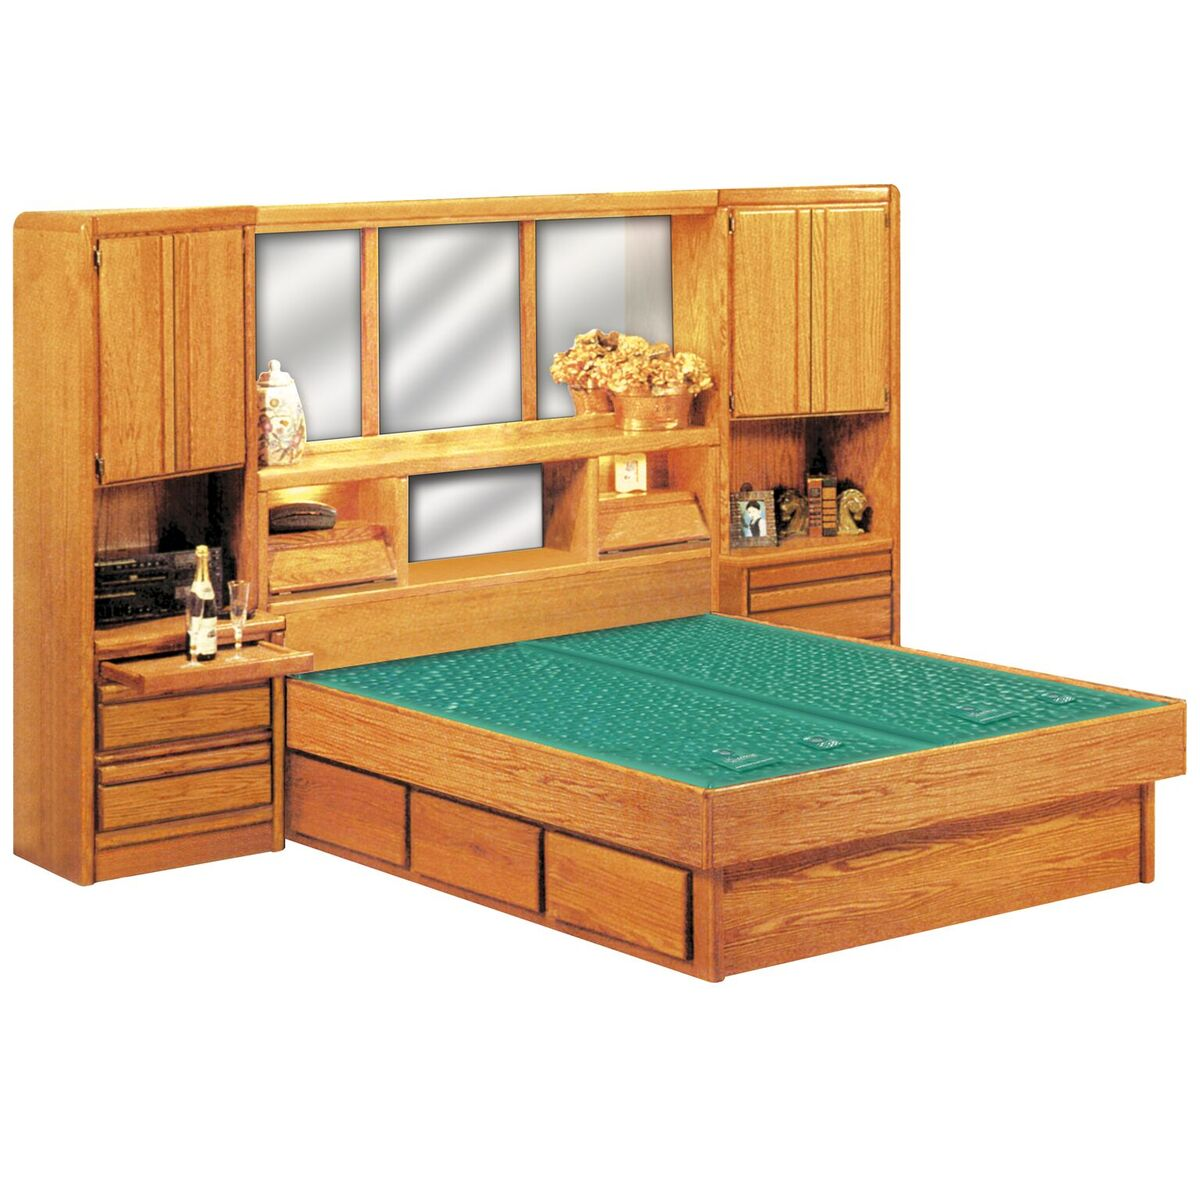 Country Waterbed Store – Oldest Waterbed Store in Northern Colorado ...